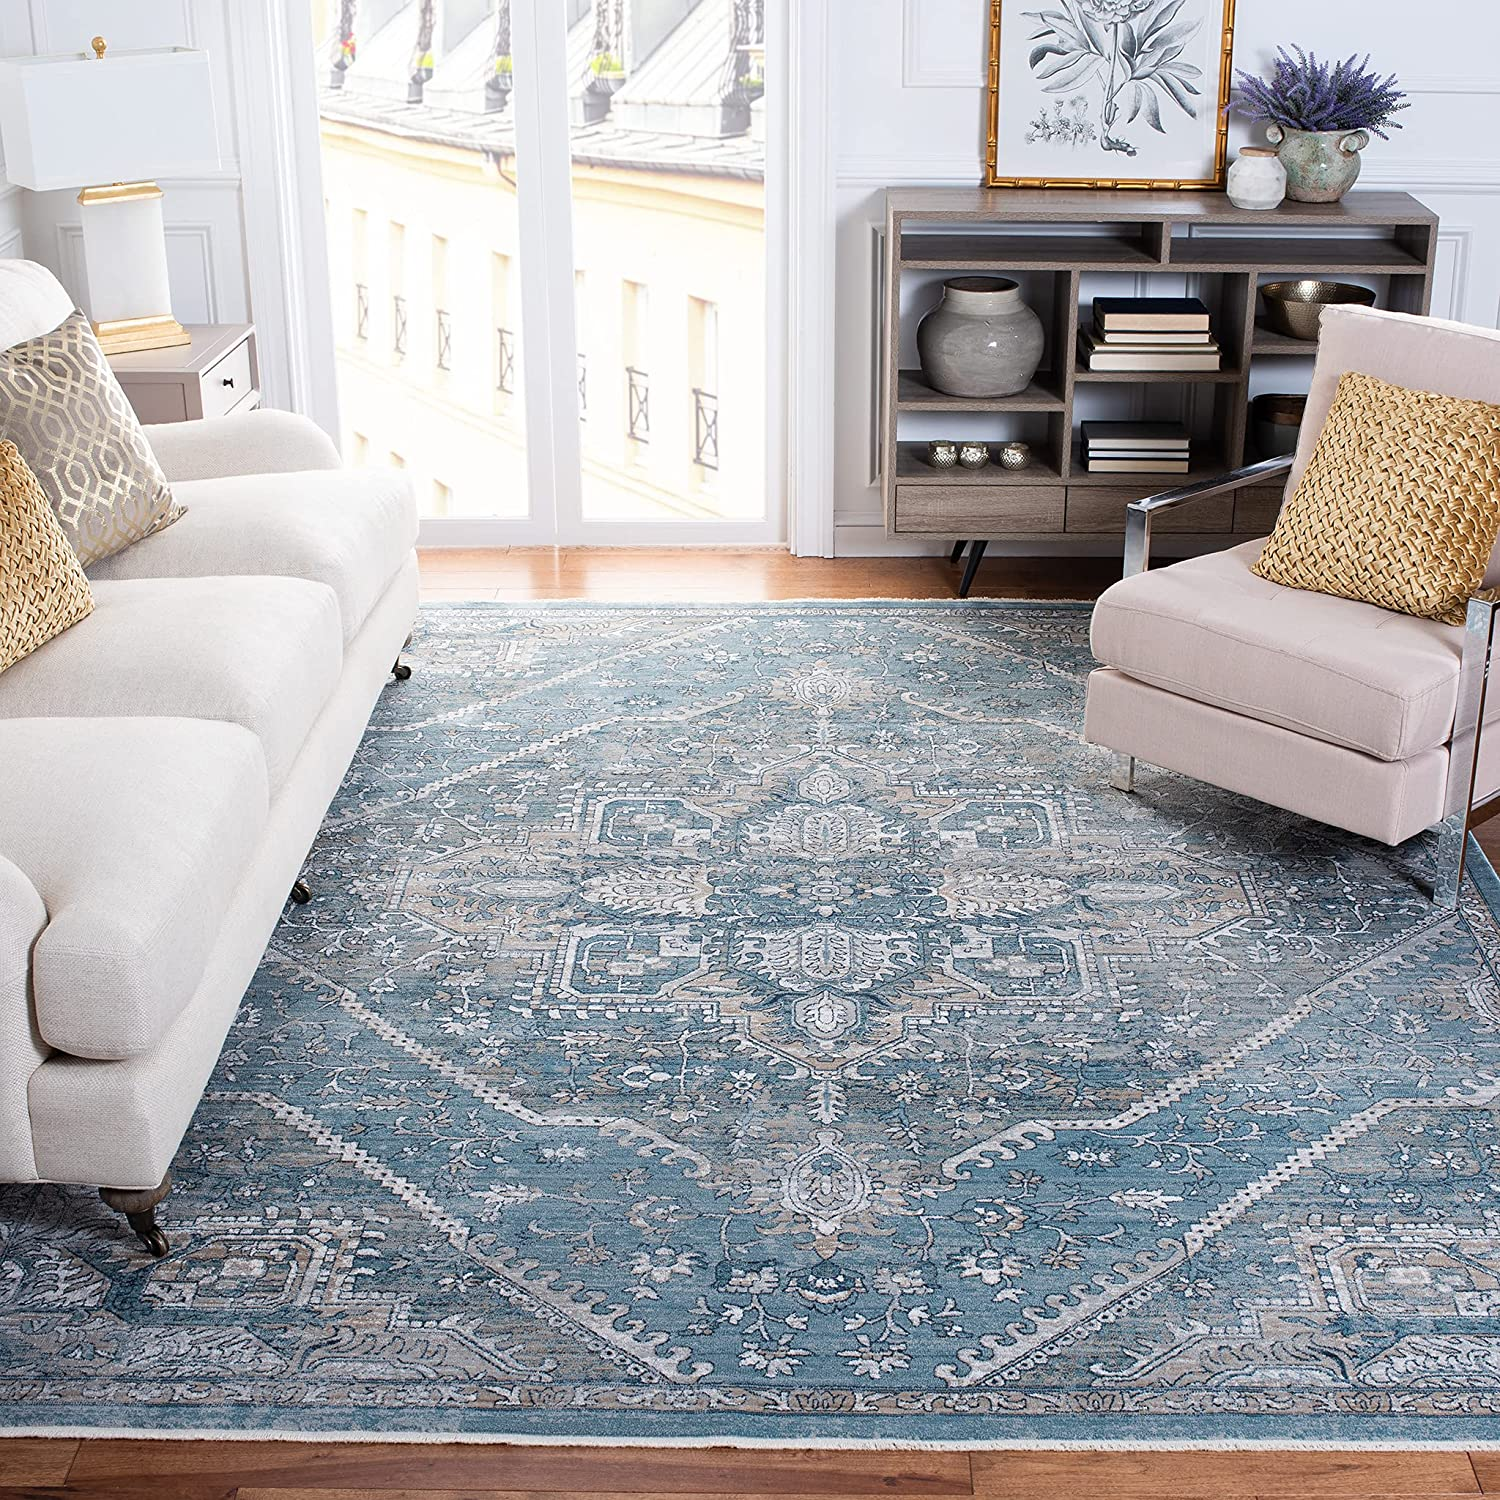 Max 72% OFF Safavieh Victoria Collection VIC932F Traditional Distres Animer and price revision Vintage